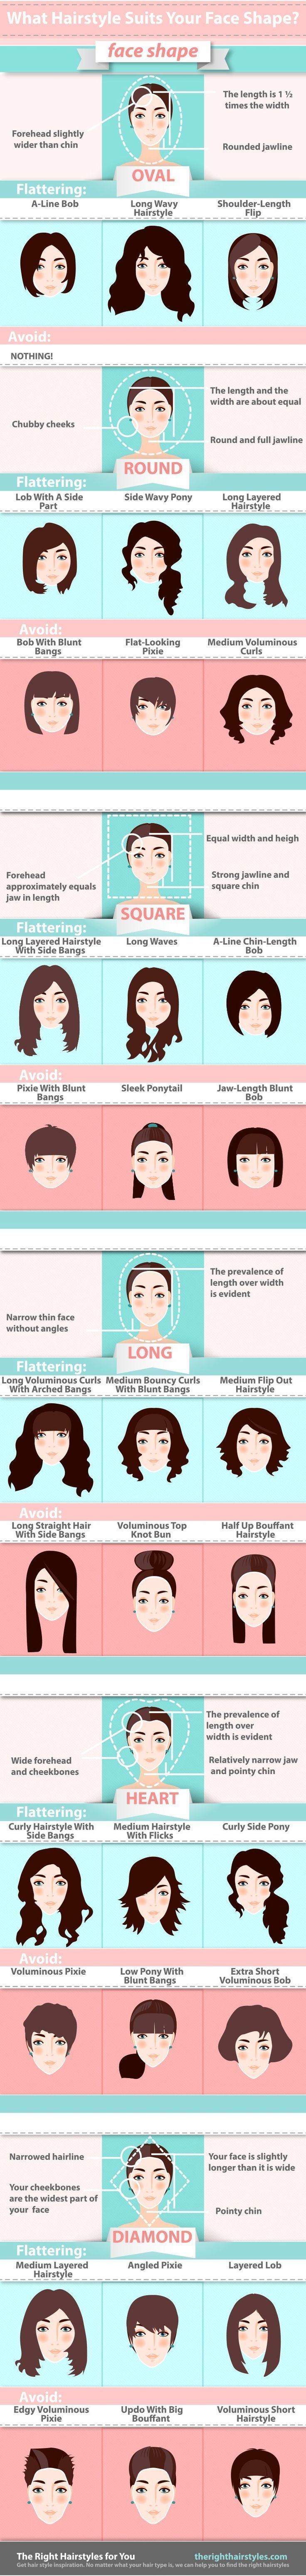 infographic | The Ultimate Hairstyle Guide For Your Face Shape